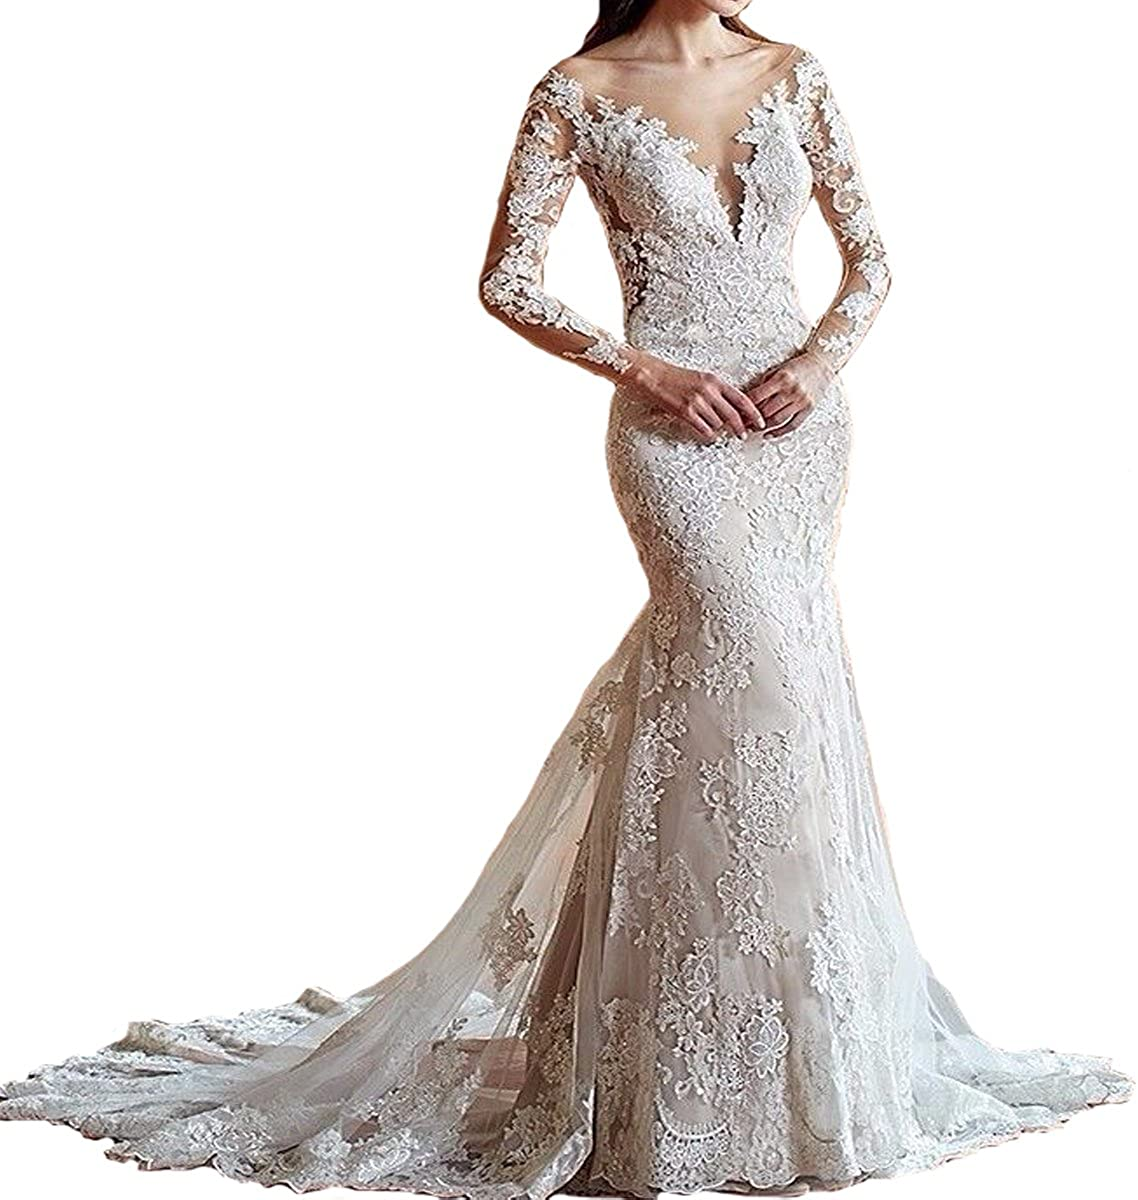 Yuxin Womens Illusion Long Sleeves Lace Mermaid Wedding Dress Appliques V Cut Backless Bridal Gowns